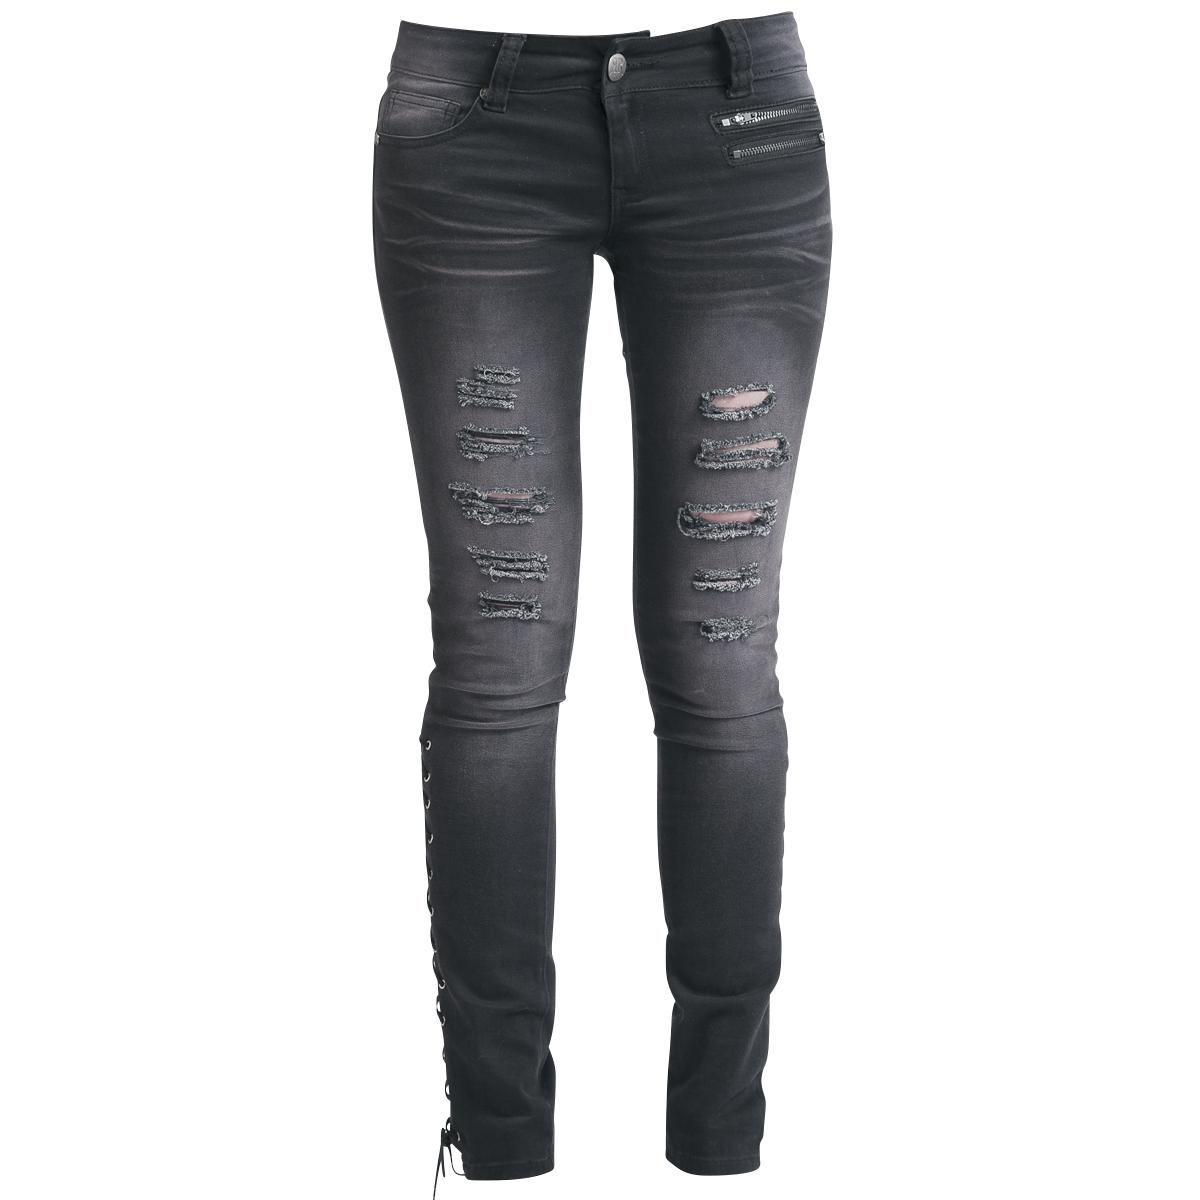 Corded Jeans - Girls jeans by Rock Rebel by EMP - Article Number: 262490 - from 41.99 £ - EMP Mail Order UK Ltd. ::: The Heavy Metal Mailorder ::: Merchandise, Shirts and more!